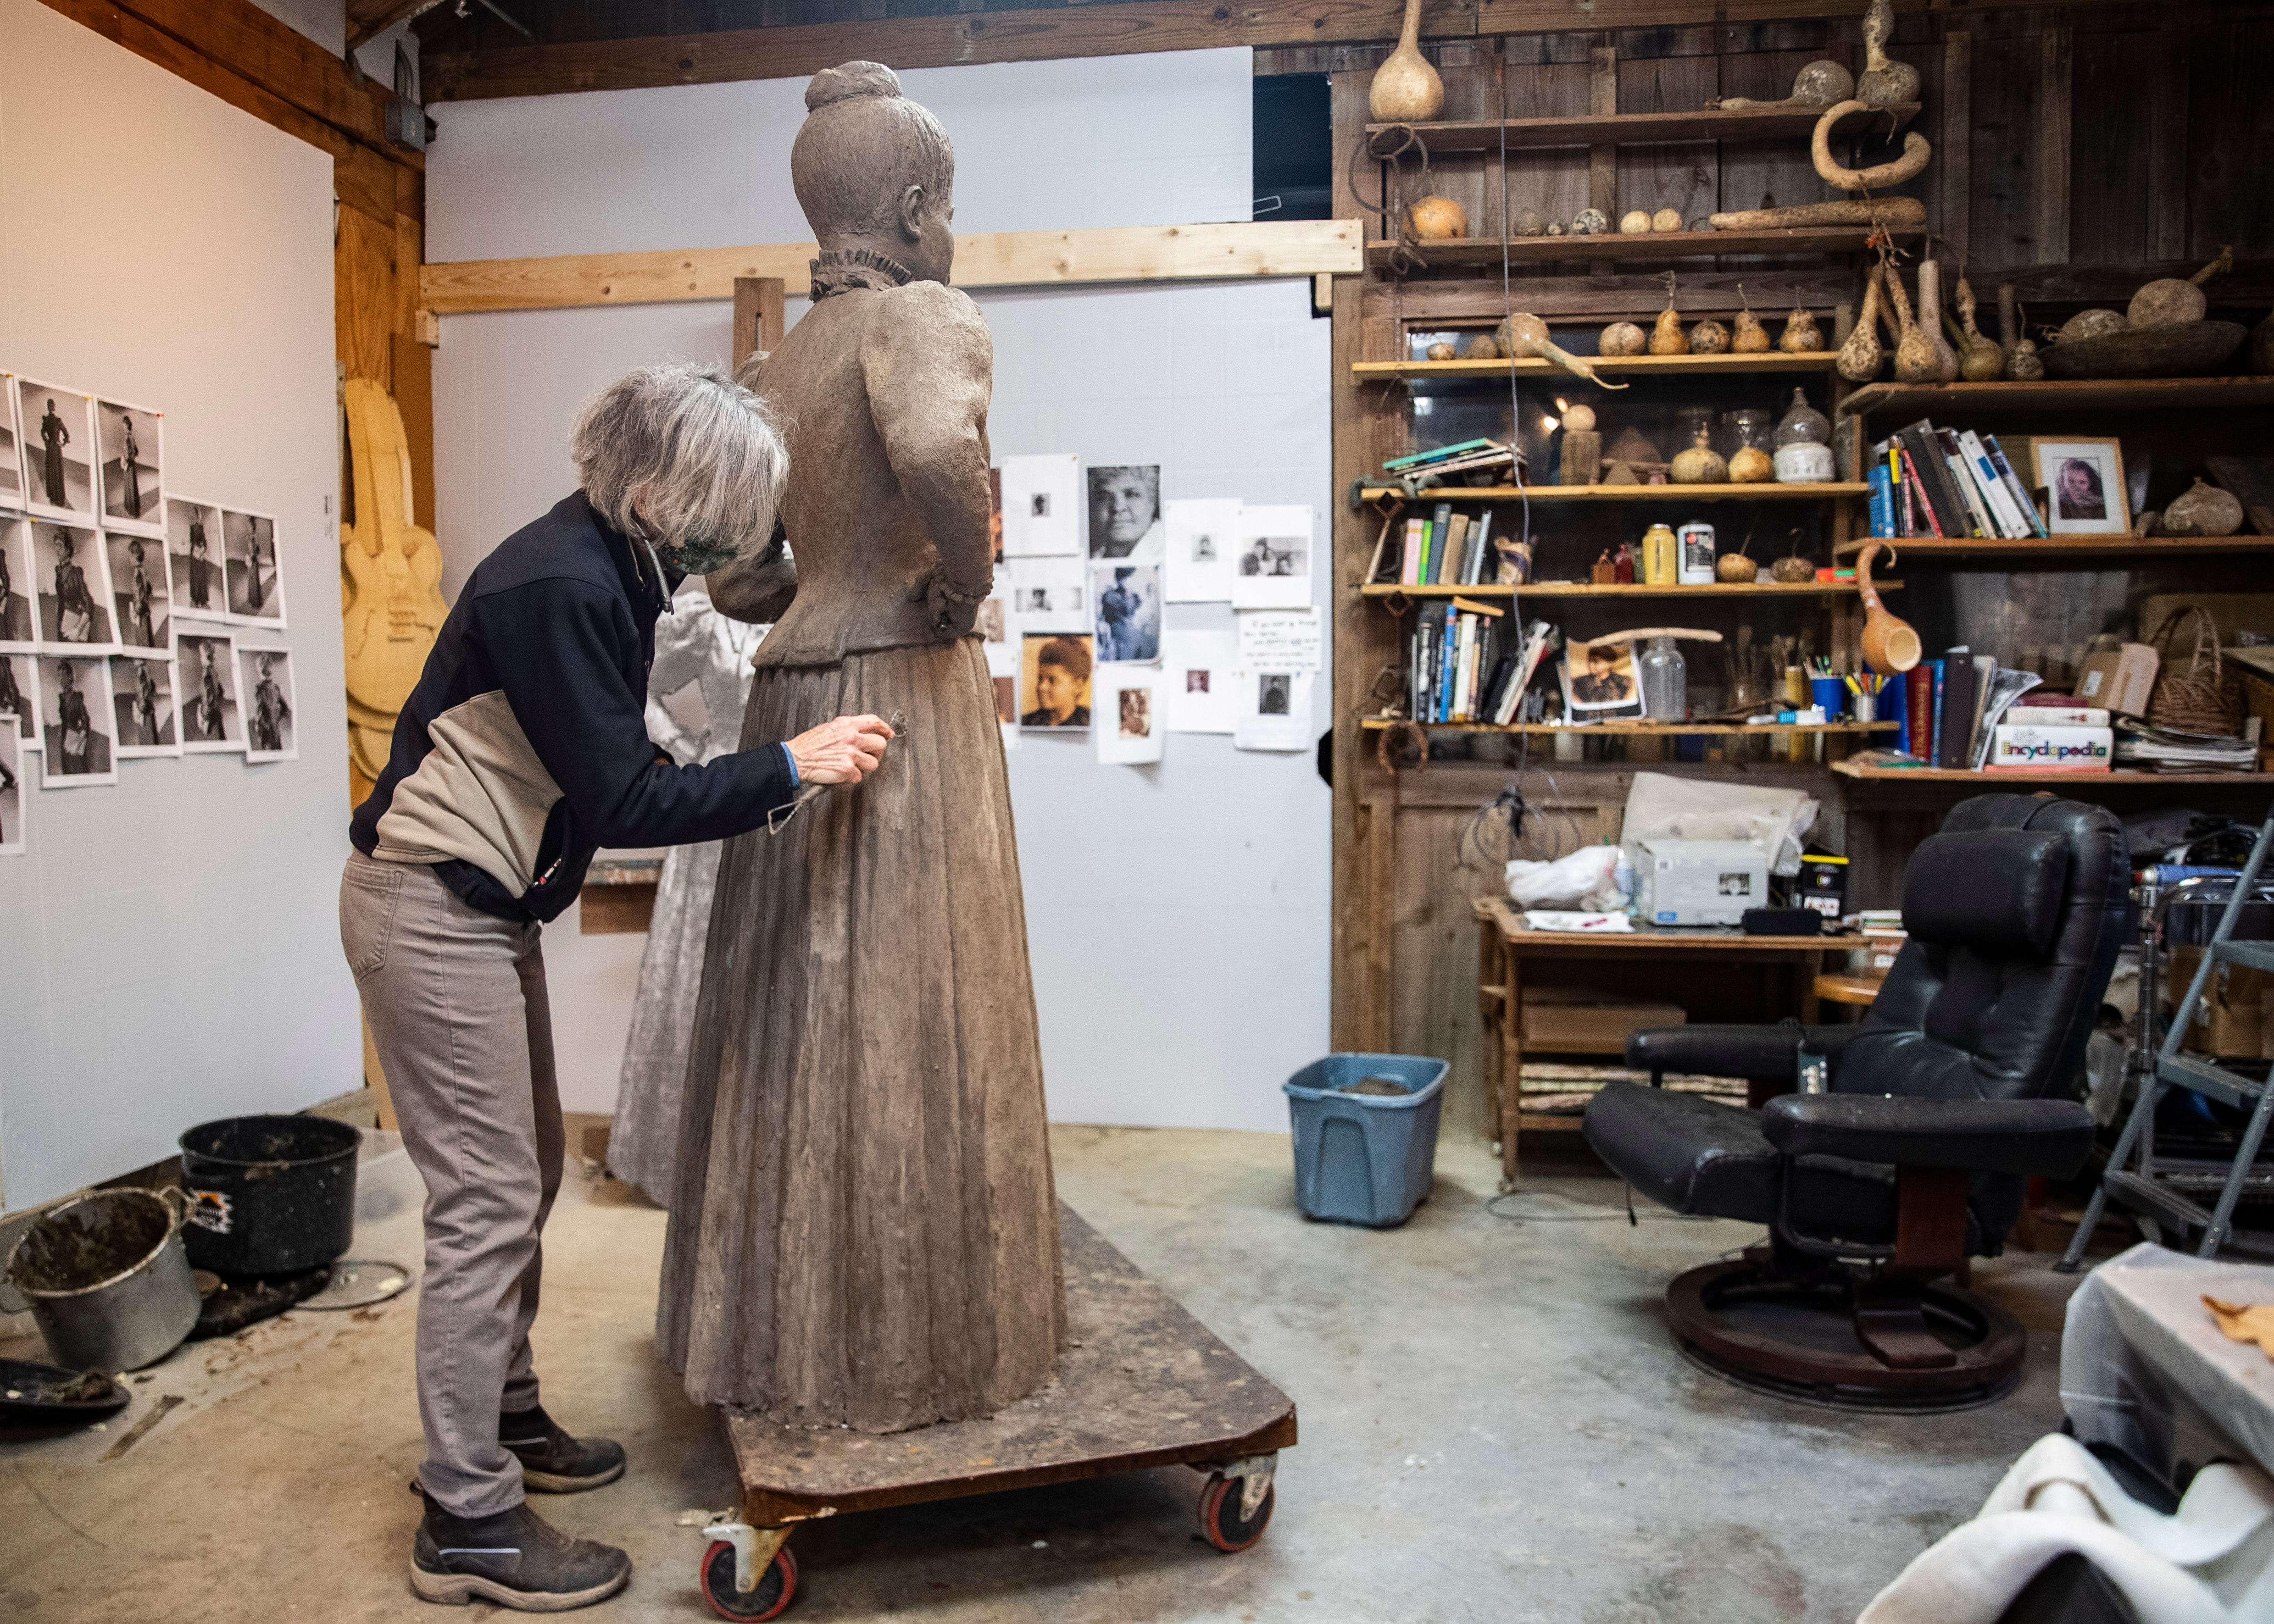 Andrea Lugar of the Lugar Bronze Foundry in Eads, Tenn.,  sculpts the statue of Ida B. Wells-Barnett, the African American civil rights advocate and journalist who fought against racism, segregation and lynching, at her home studio on Friday, March 15, 2021.